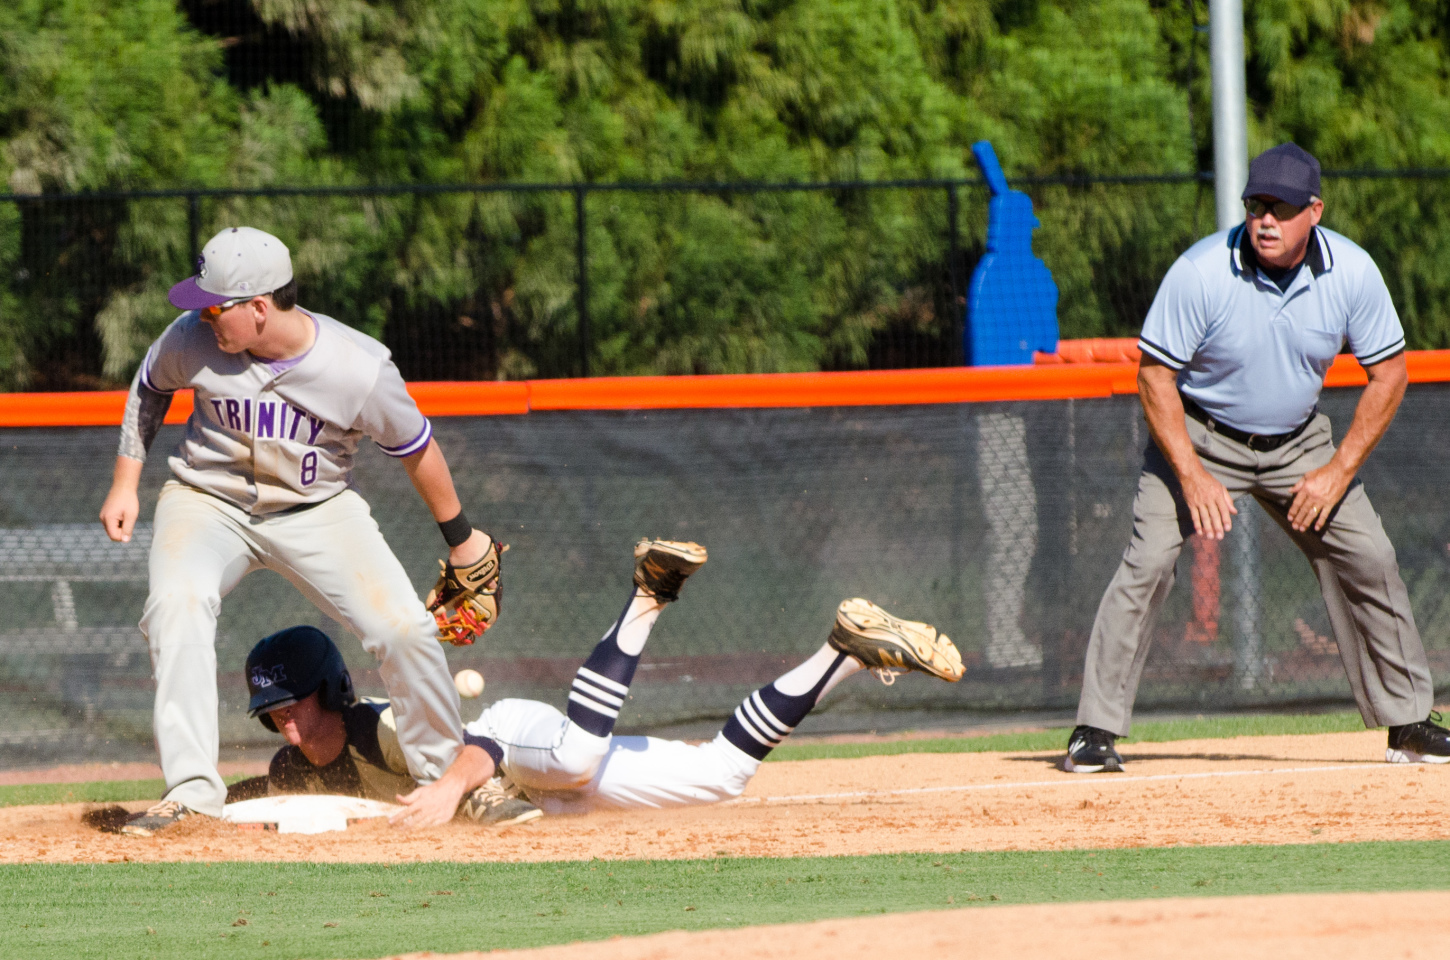 A relay throw to third base gets away from Trinity's Shep Hancock as Tyler Bass slides in safely.